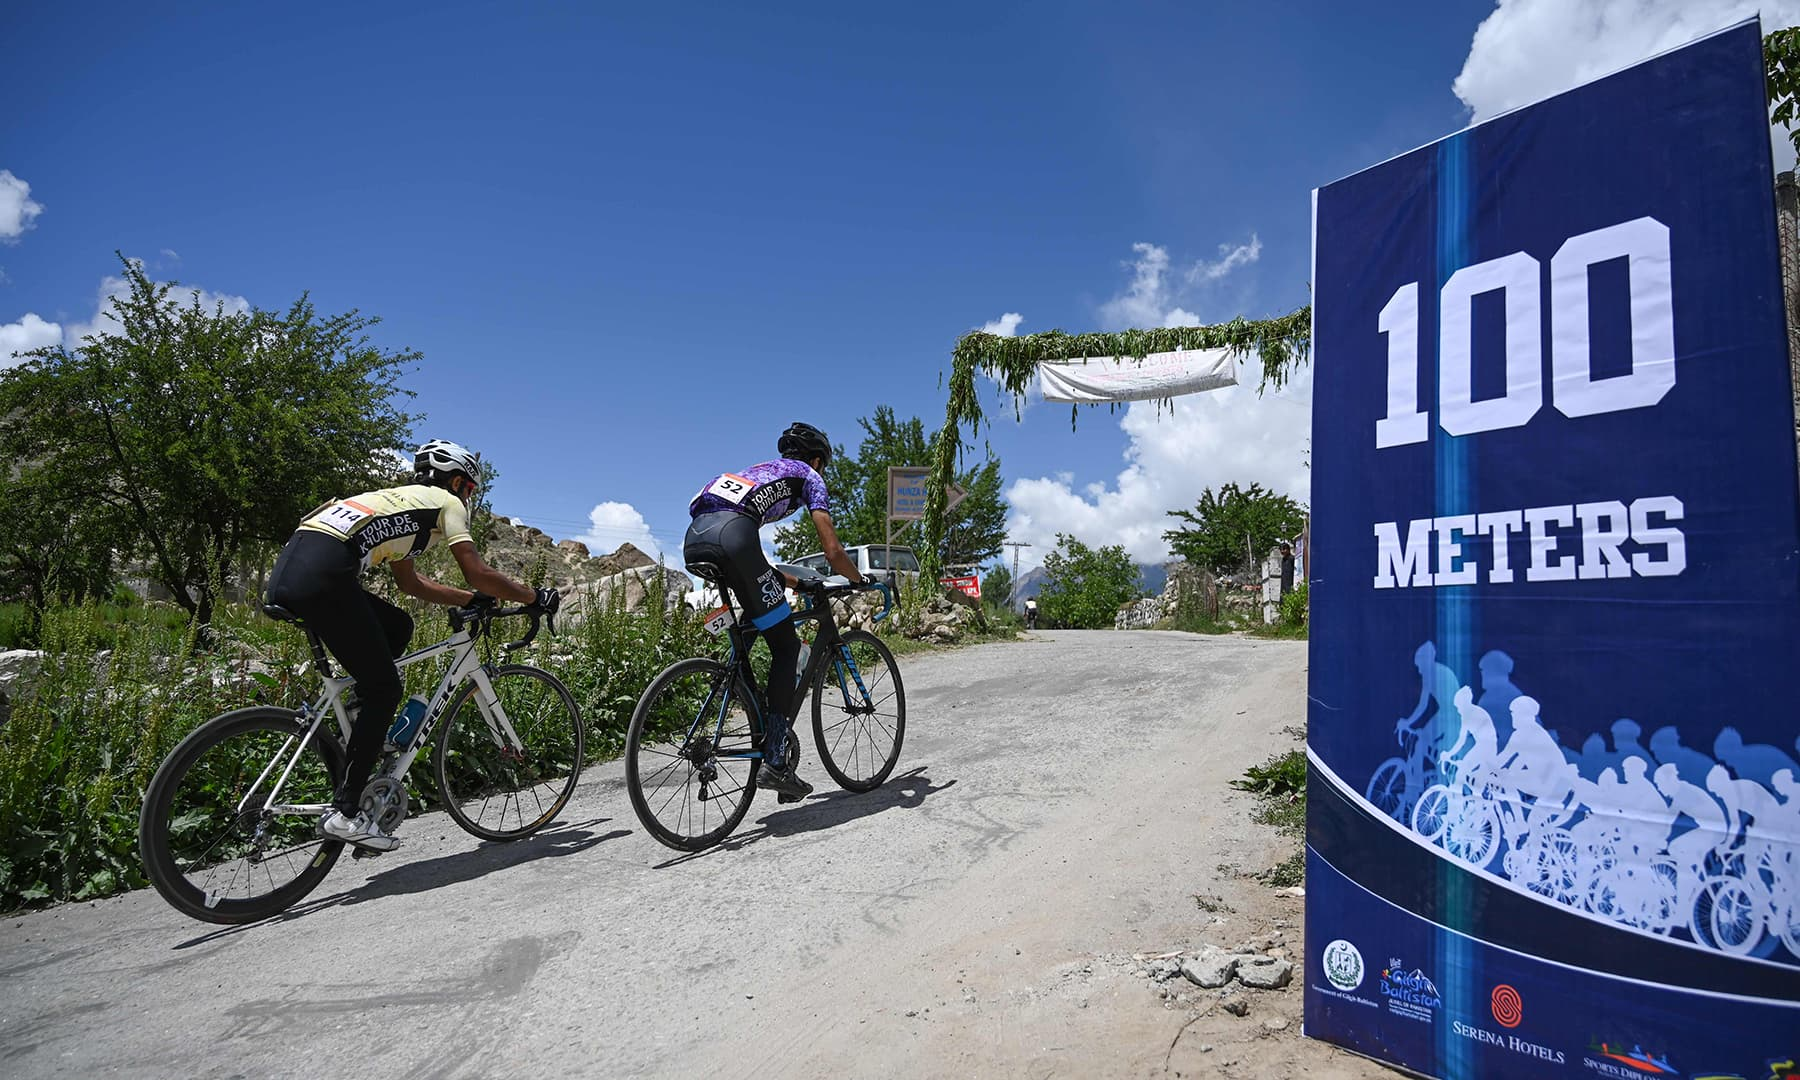 Pakistani cyclist takes part in Tour de Khunjrab cycling race in Duikar Altit, Hunza on June 28. — AFP